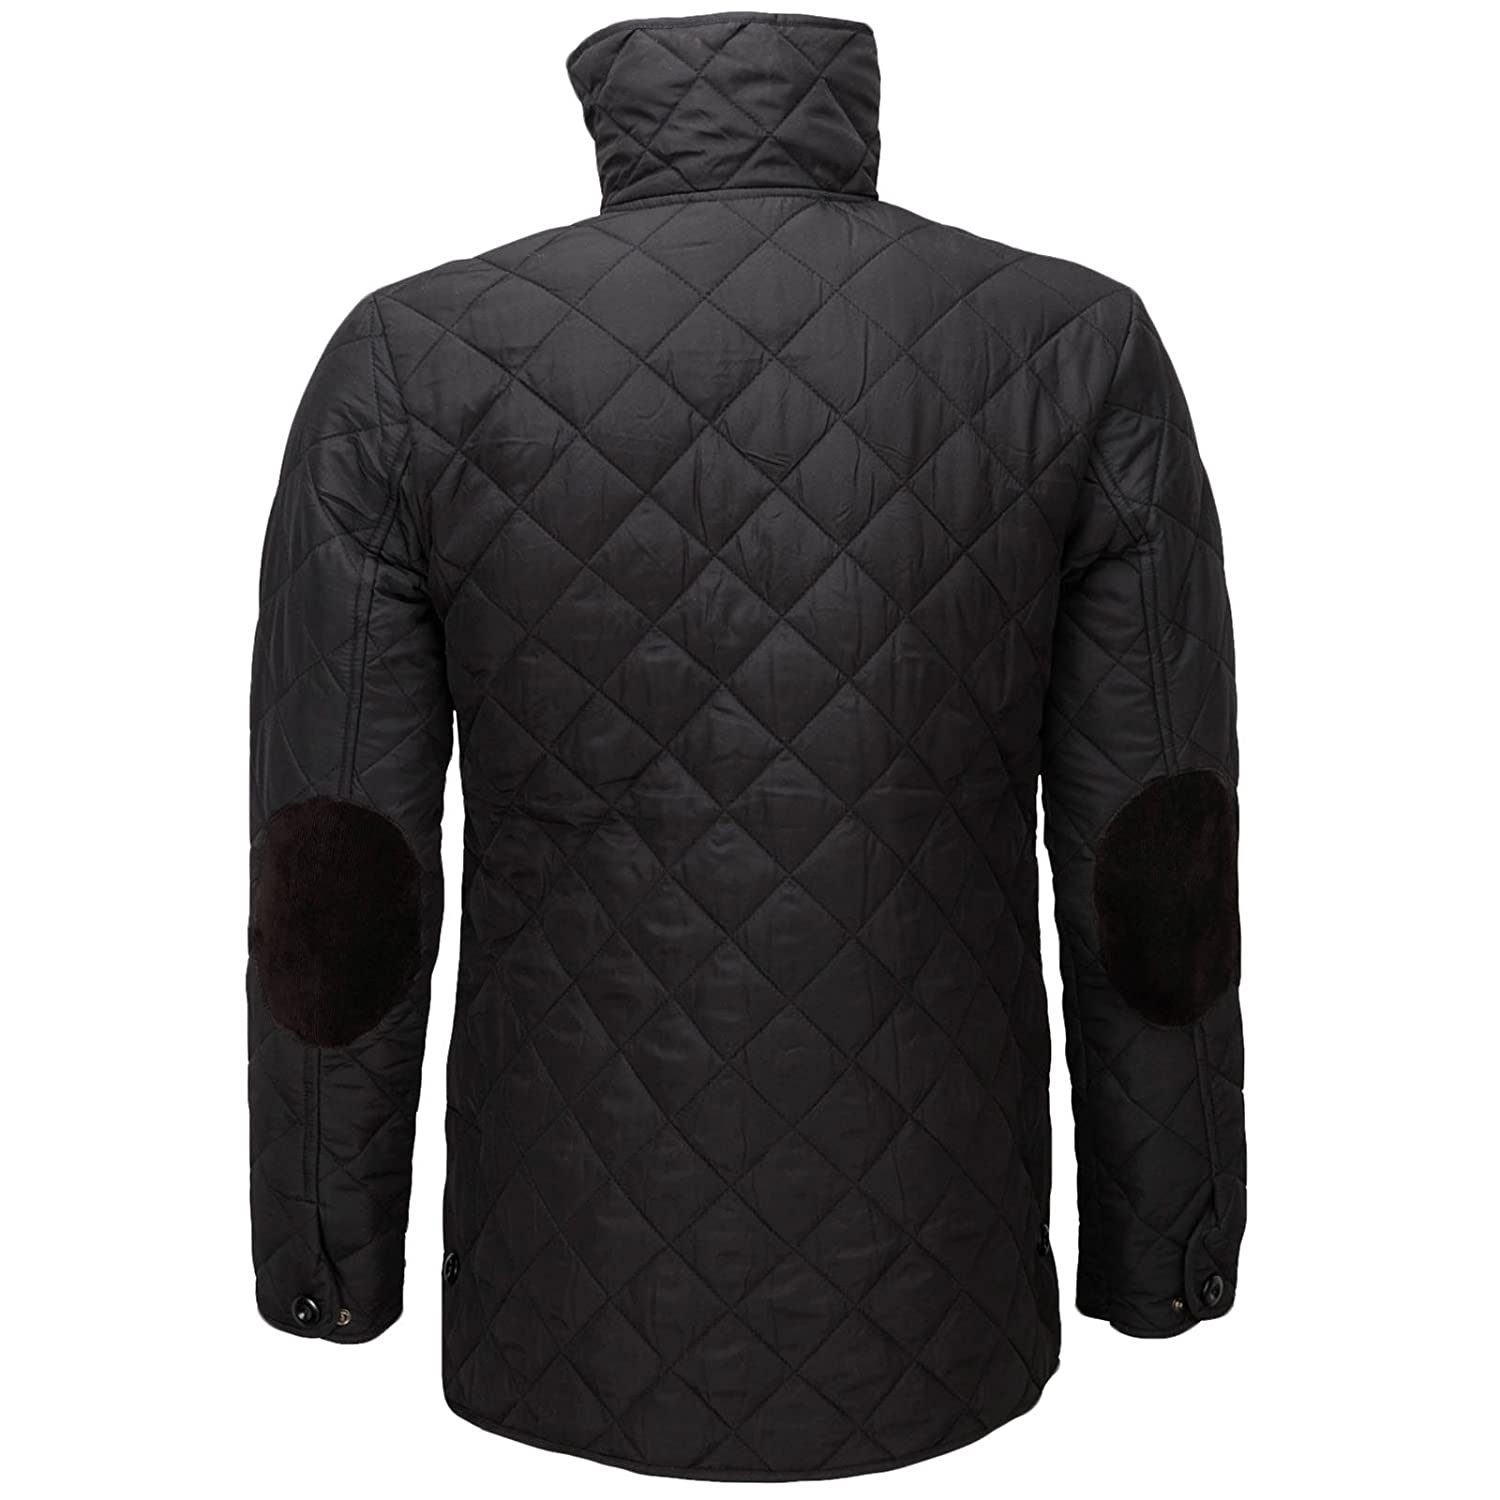 1bf0eb38f43a James Darby Mens Slim Fit Diamond Quilted Jacket: Amazon.co.uk: Clothing